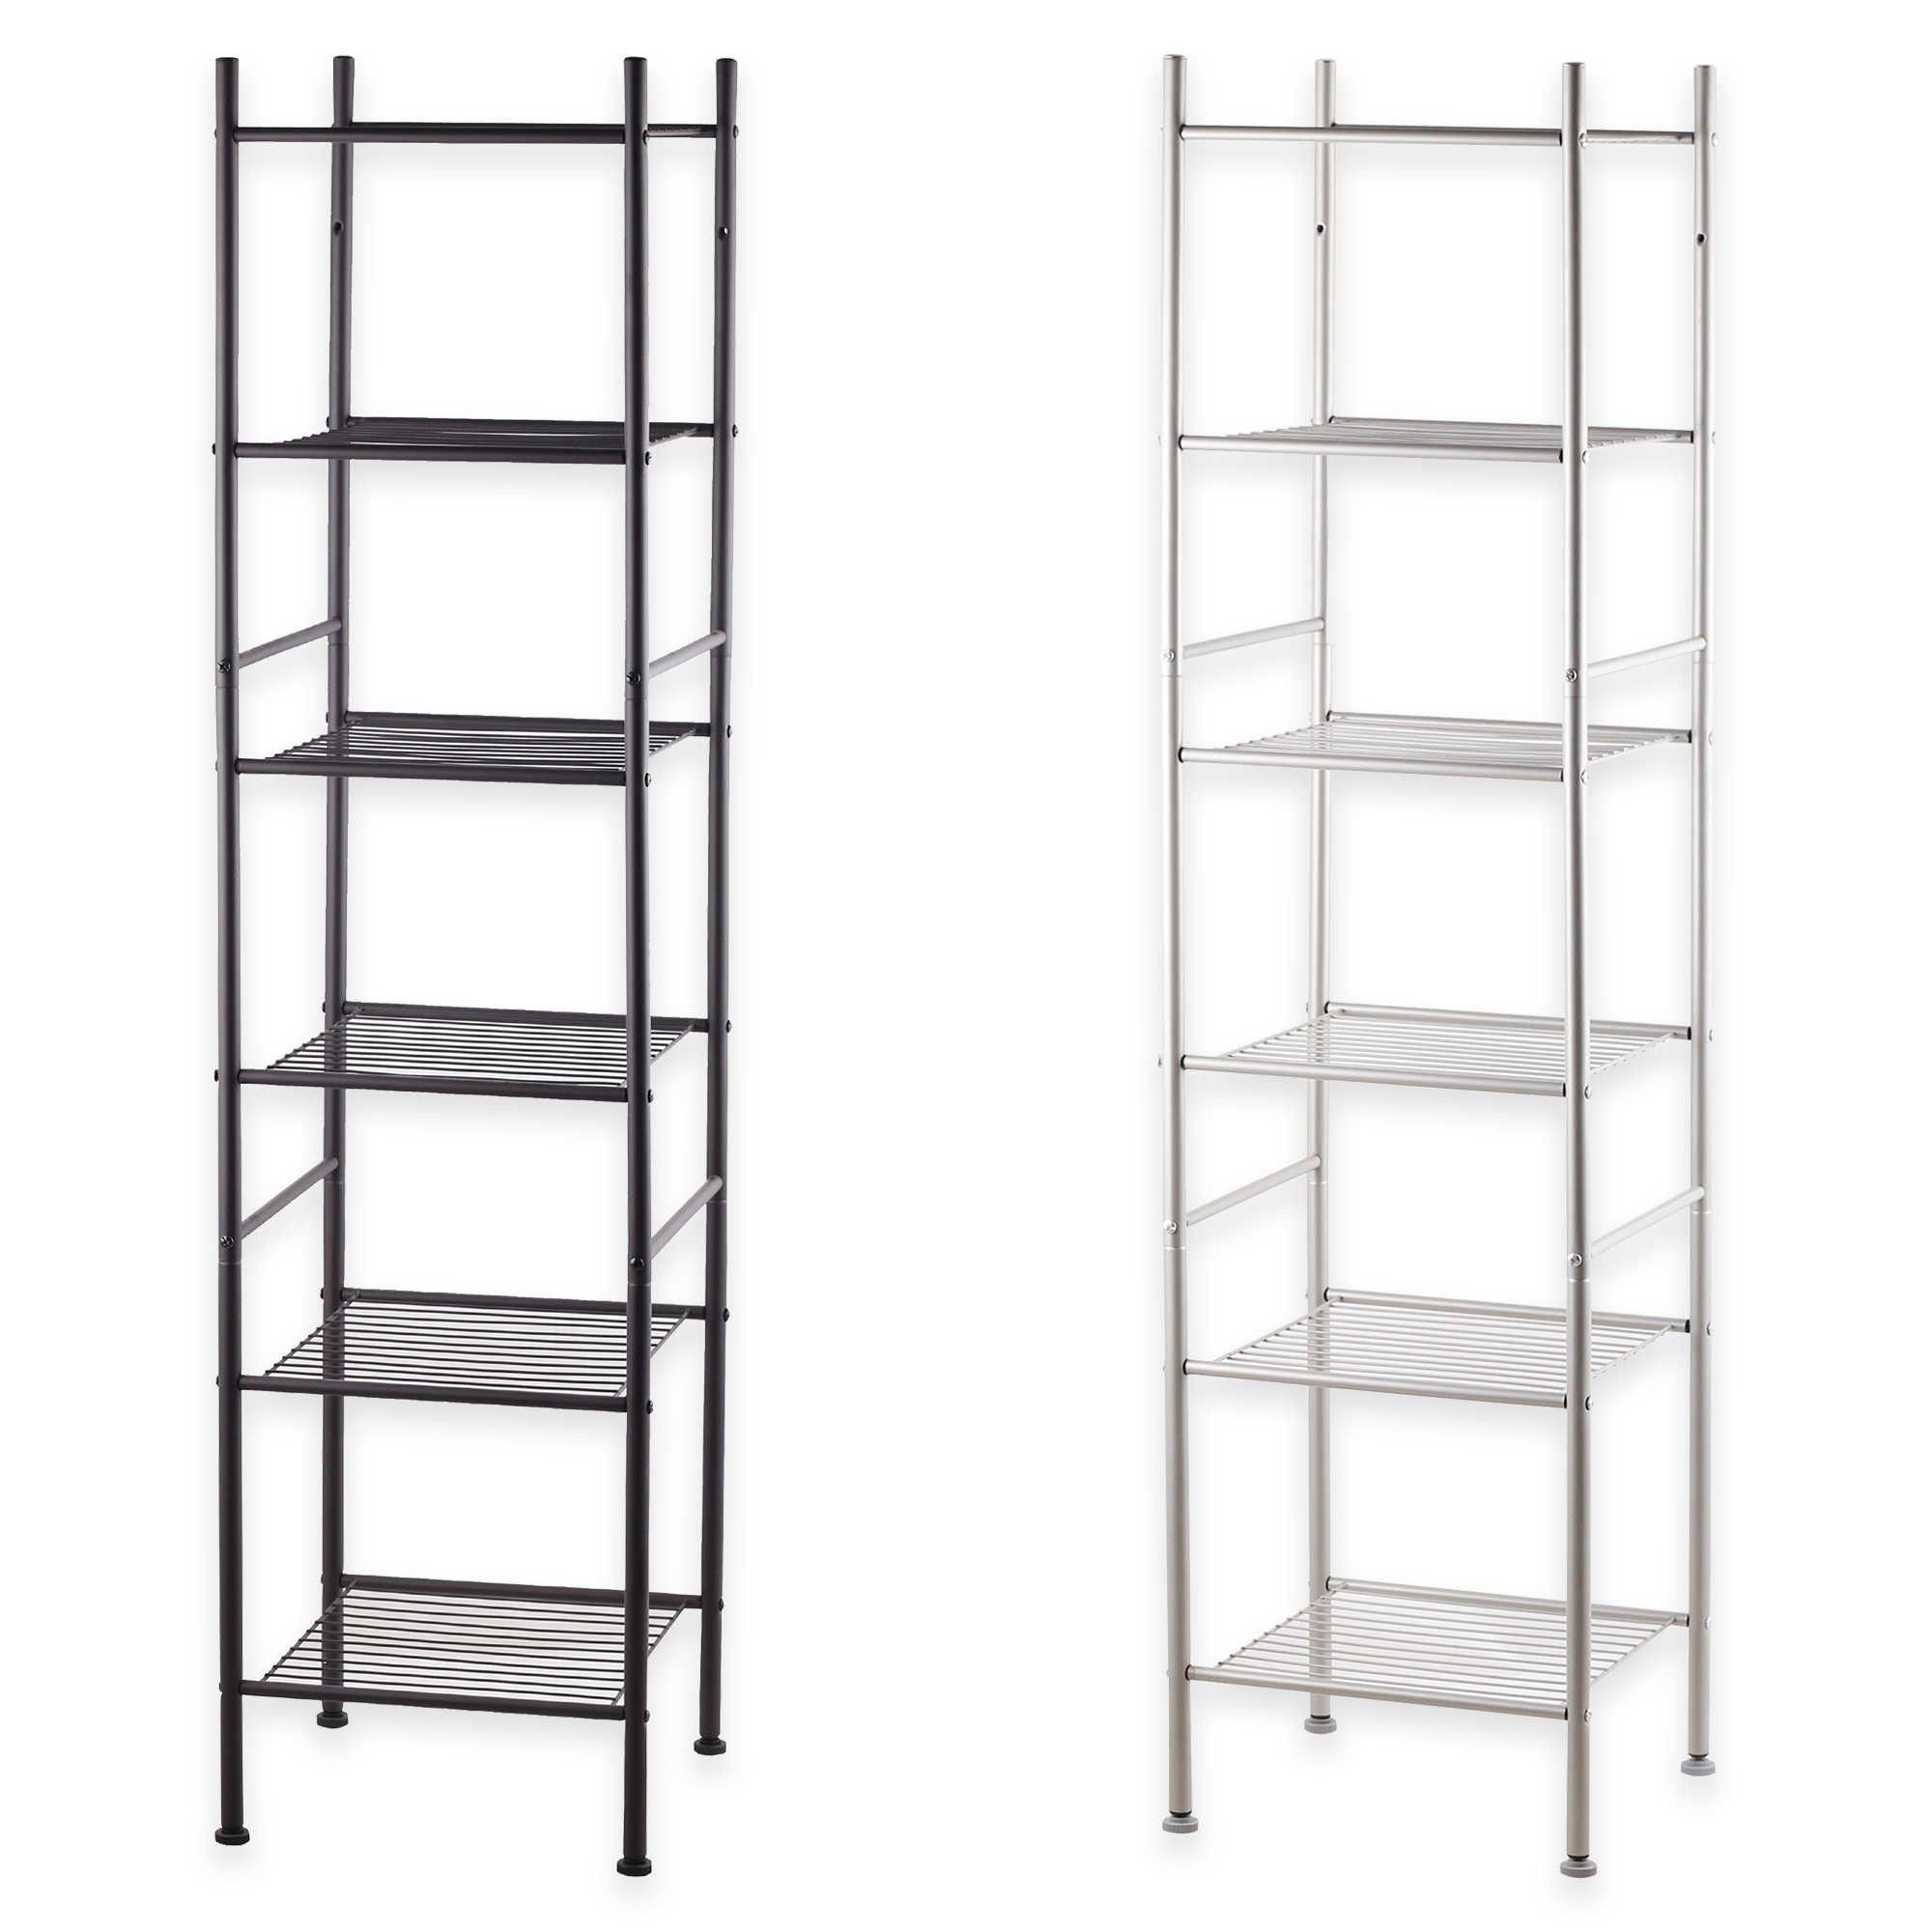 6-Tier Tower Rack Bath Shelf in Oil Rubbed Bronze | Products ...